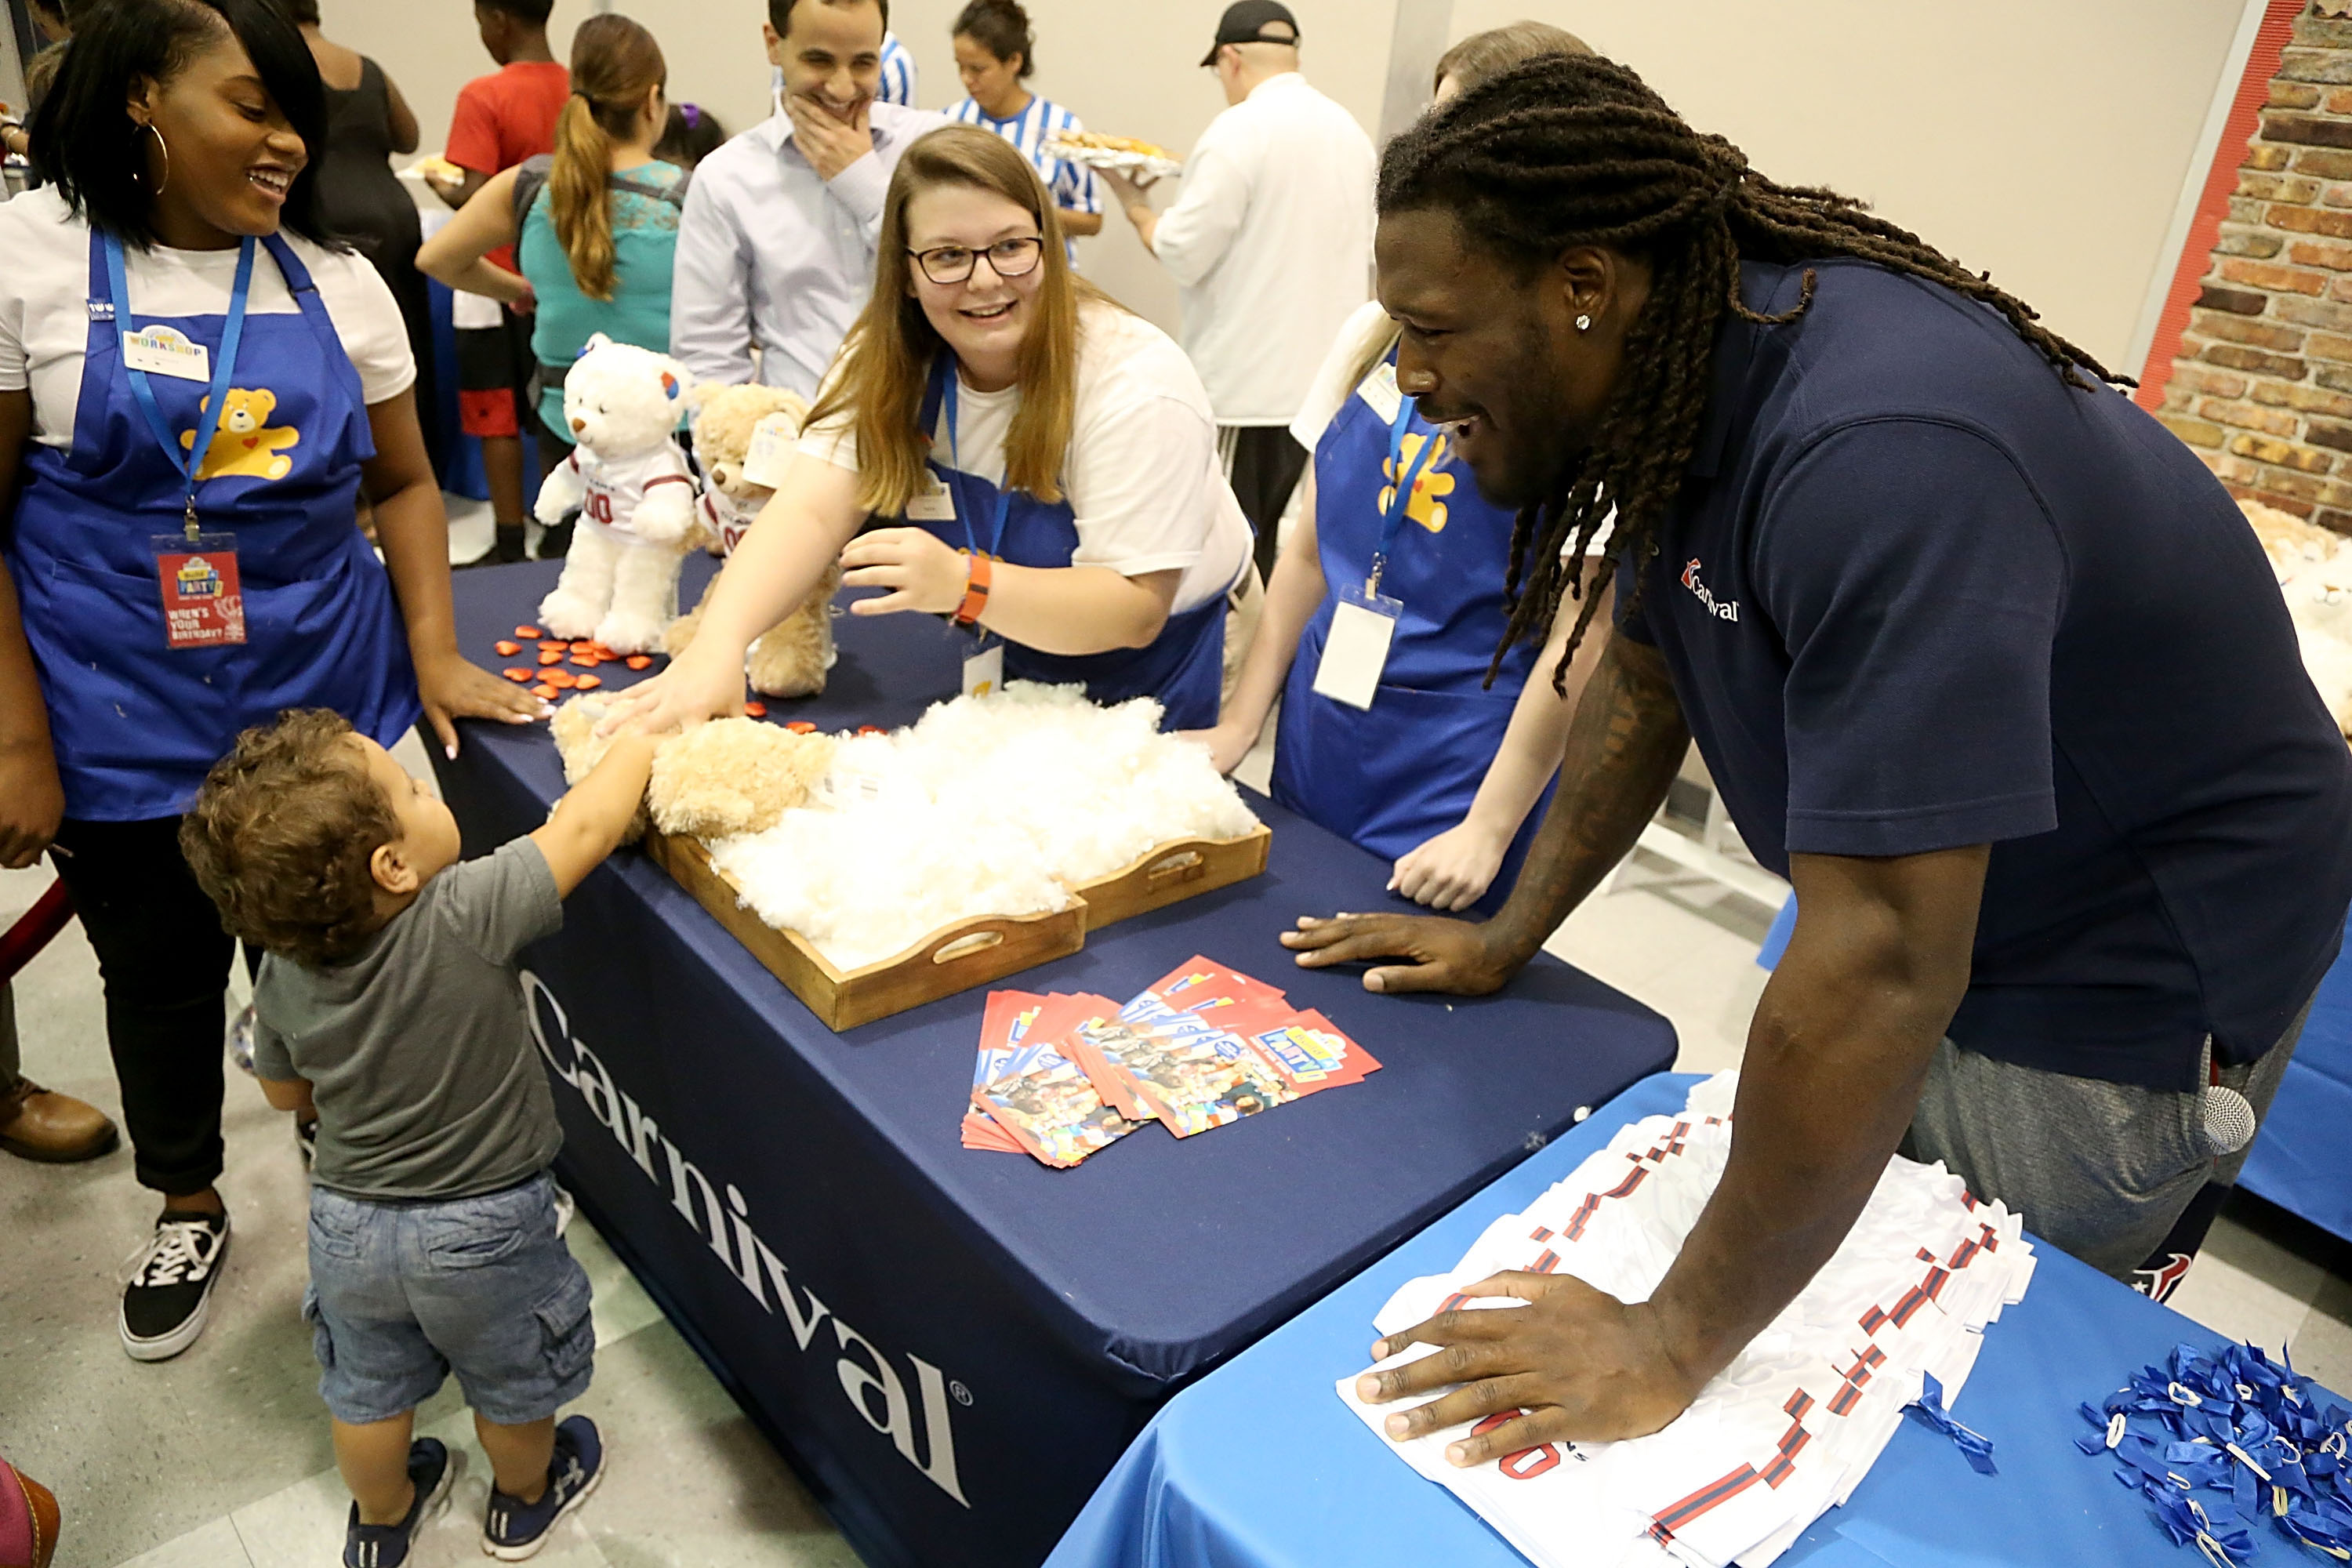 Carnival Cruise Line And Houston Texans Gear Up For 'Summer Kickoff' Event With The Boys & Girls Clubs Of Greater Houston